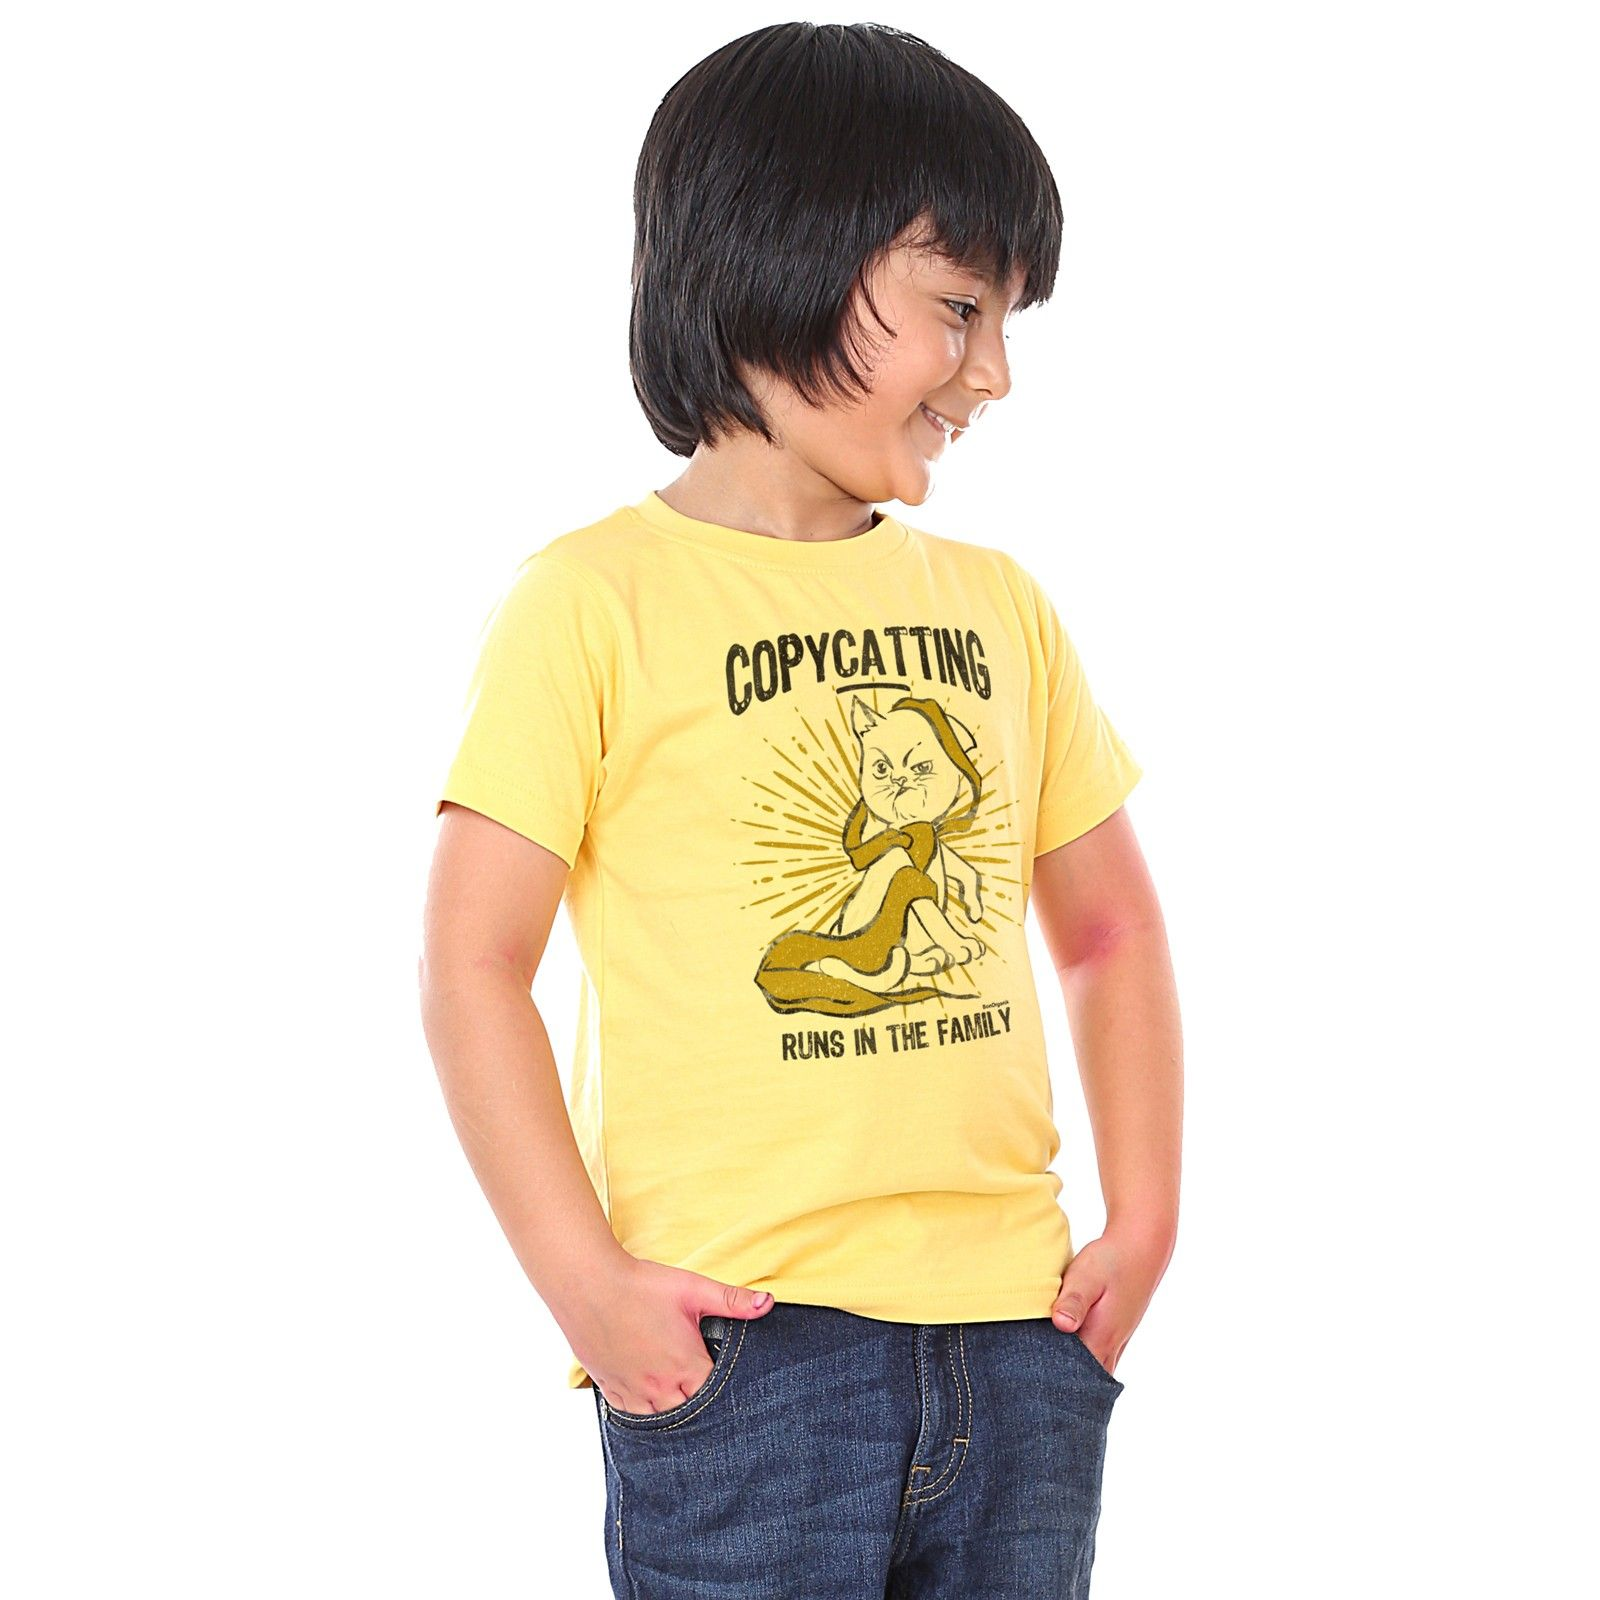 Boy's Copycatting Print Yellow T-shirt - BonOrganik